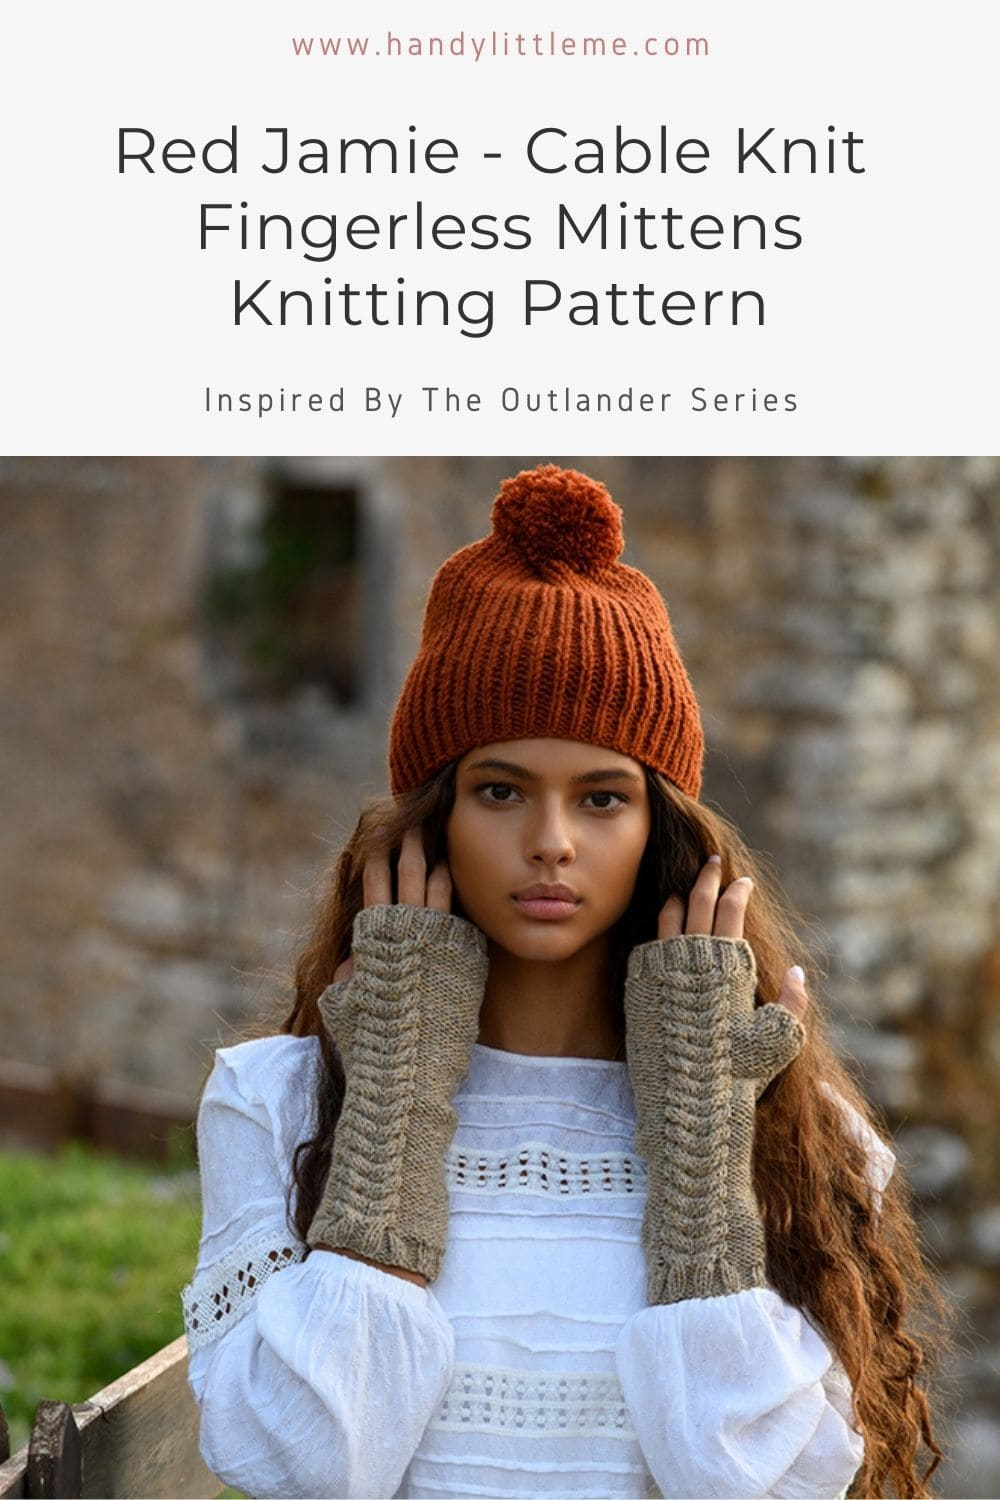 Cable knit fingerless mittens pattern